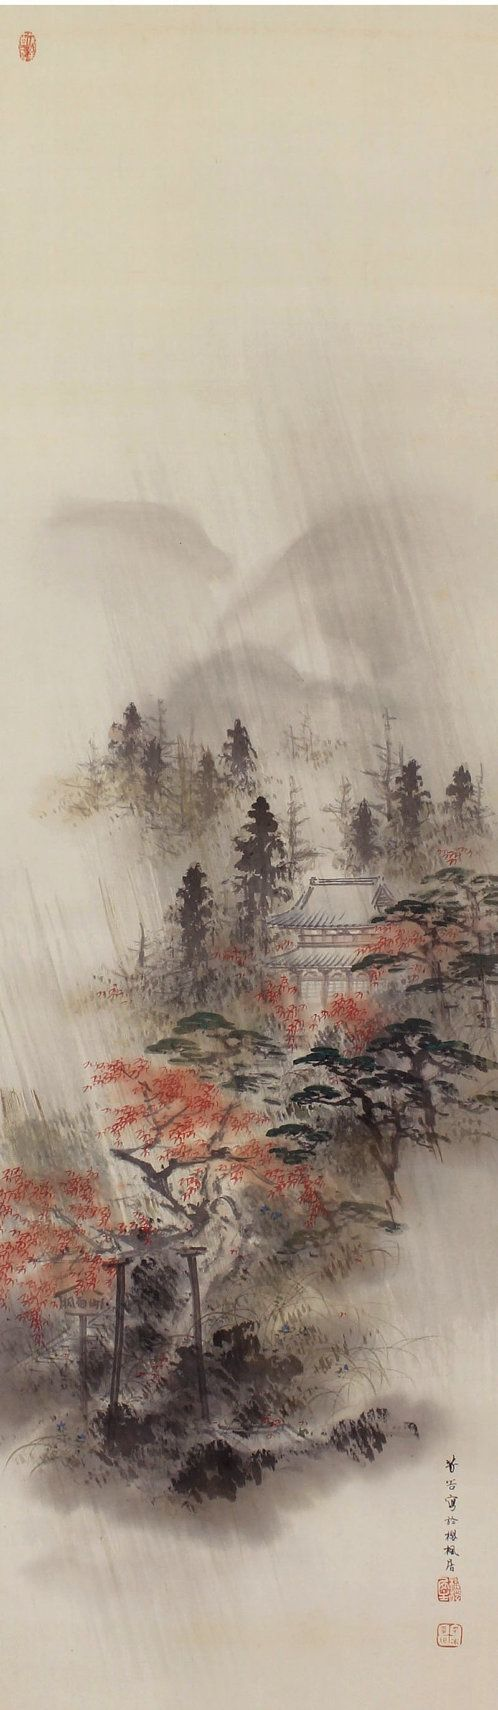 Reserved Japanese Fine Art Wall Hanging Scroll Painting Etsy Fine Art Painting Art Fine Art